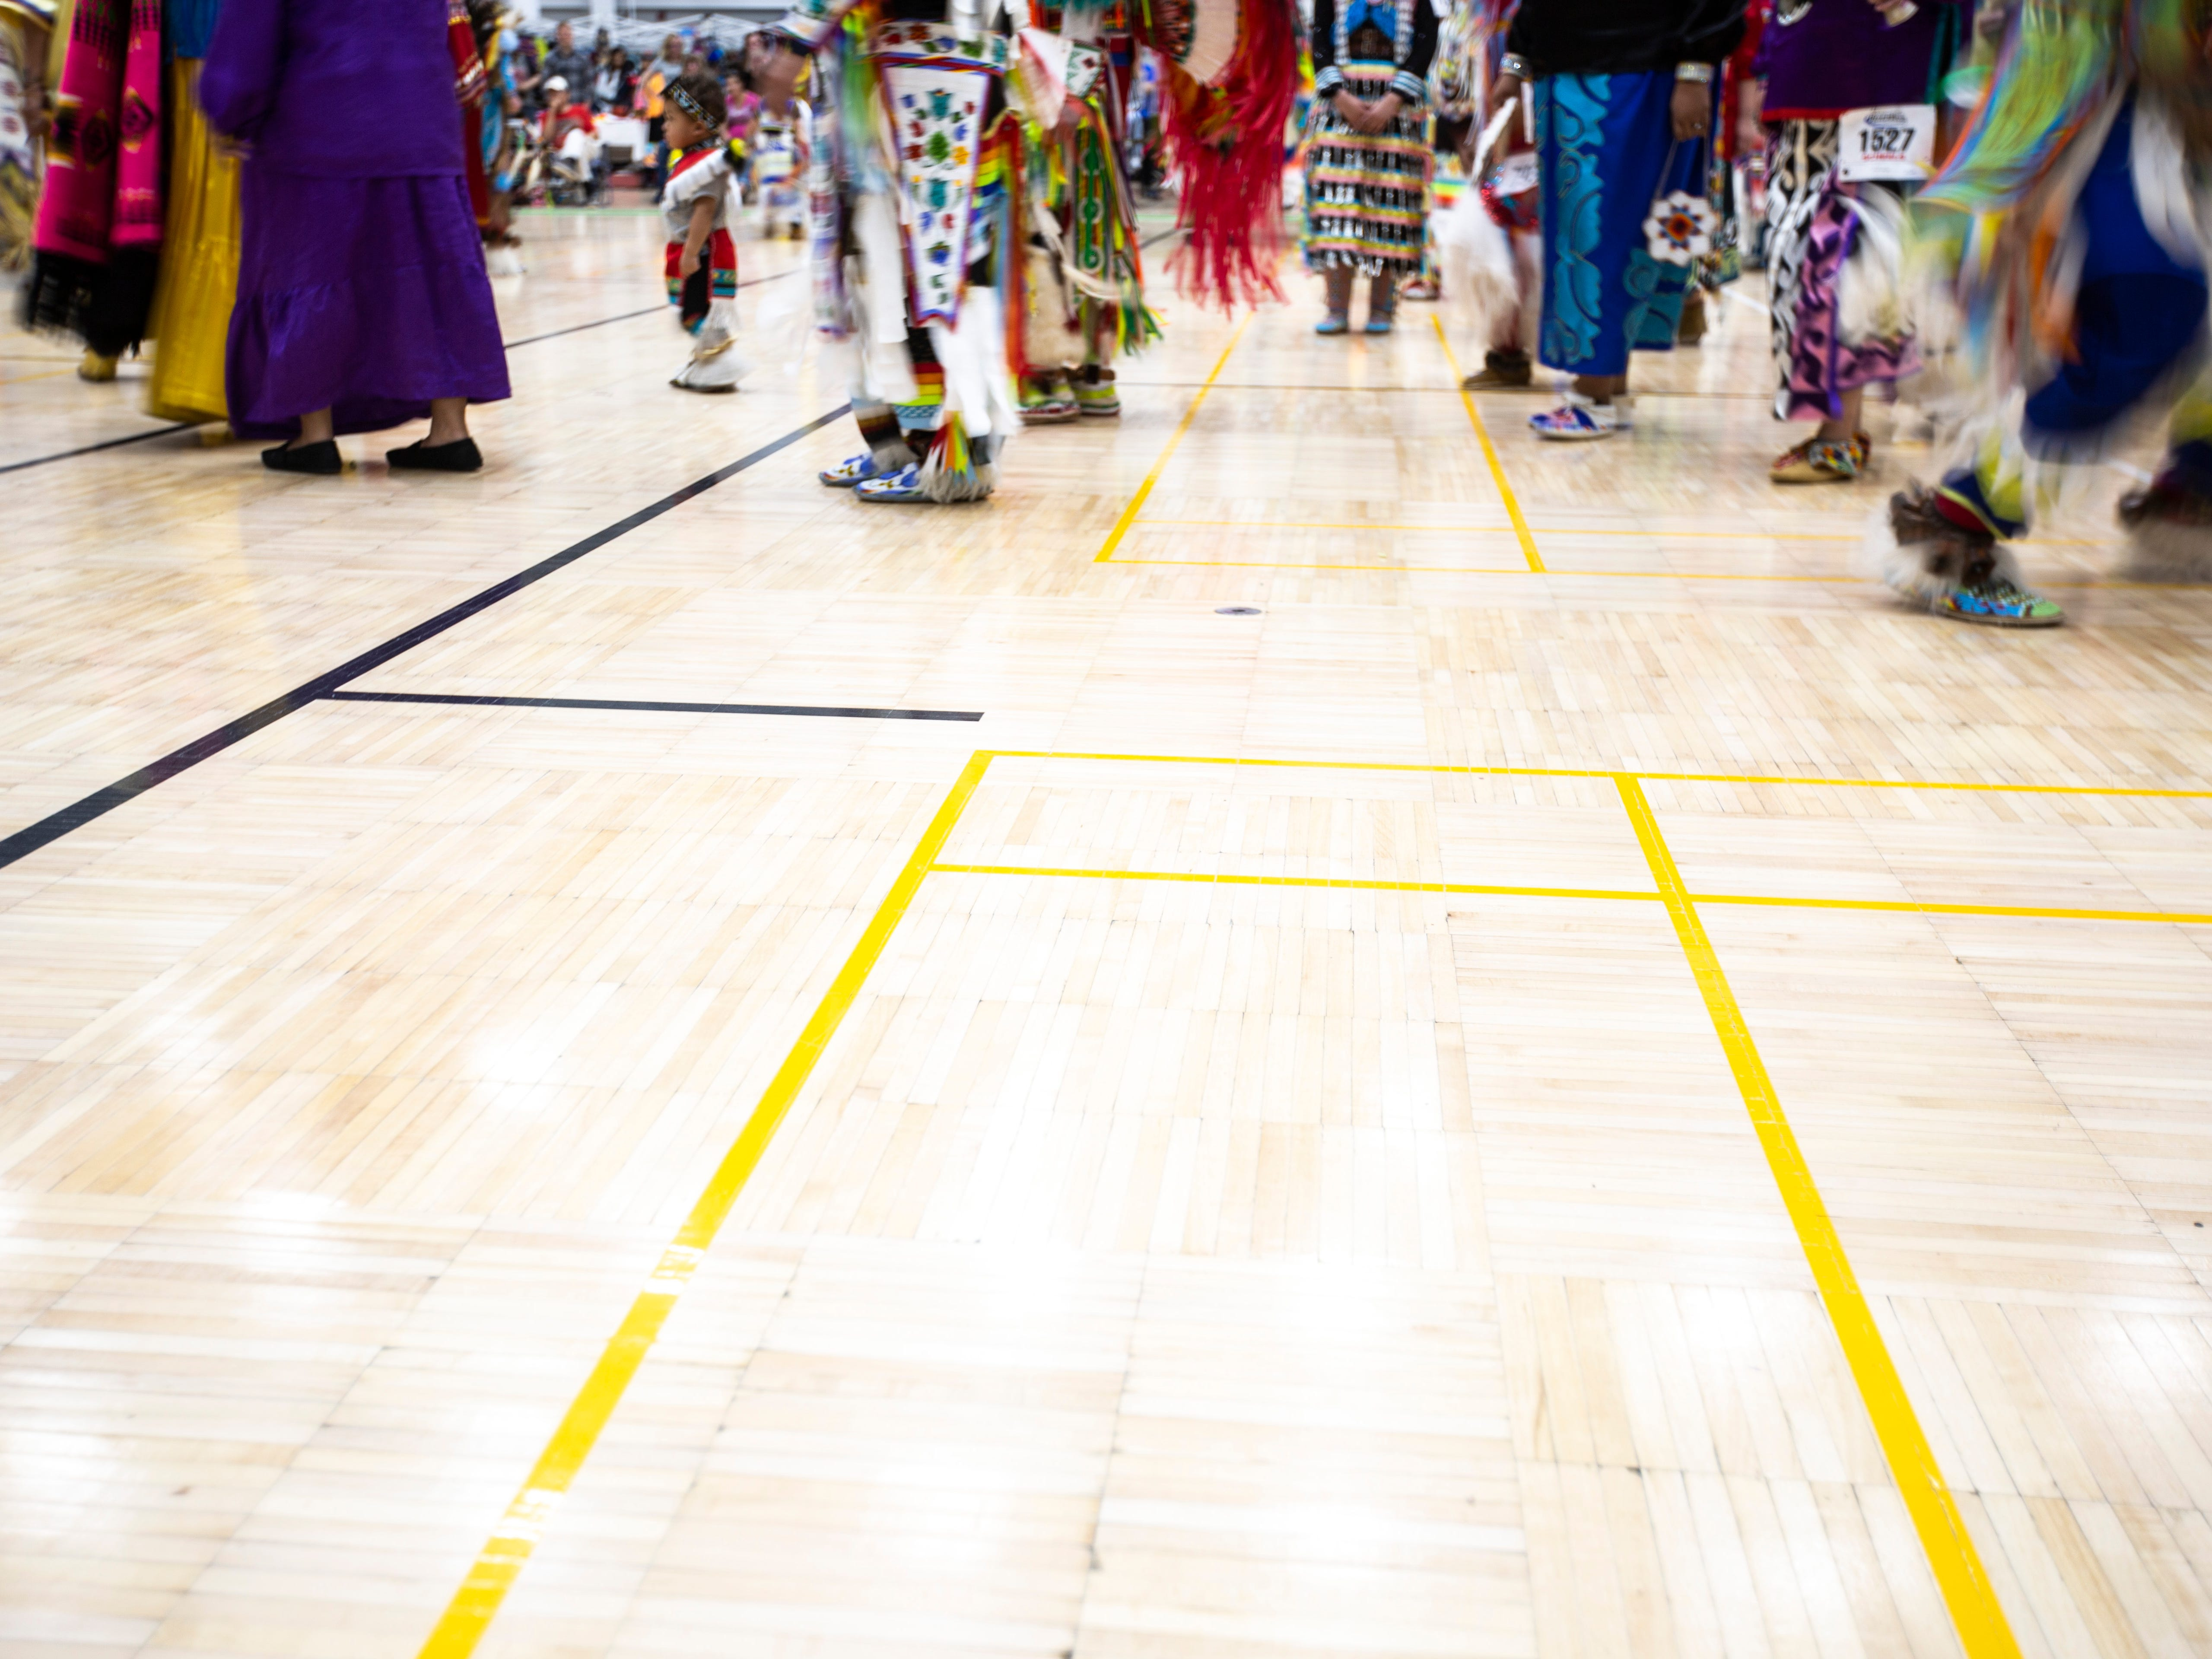 People dance during the 25th annual University of Iowa powwow, Saturday, April 20, 2019, at the Field House on the University of Iowa campus in Iowa City, Iowa. Native American Student Association organizers describe the event as a celebration of American Indian song and dance, tradition, and education.